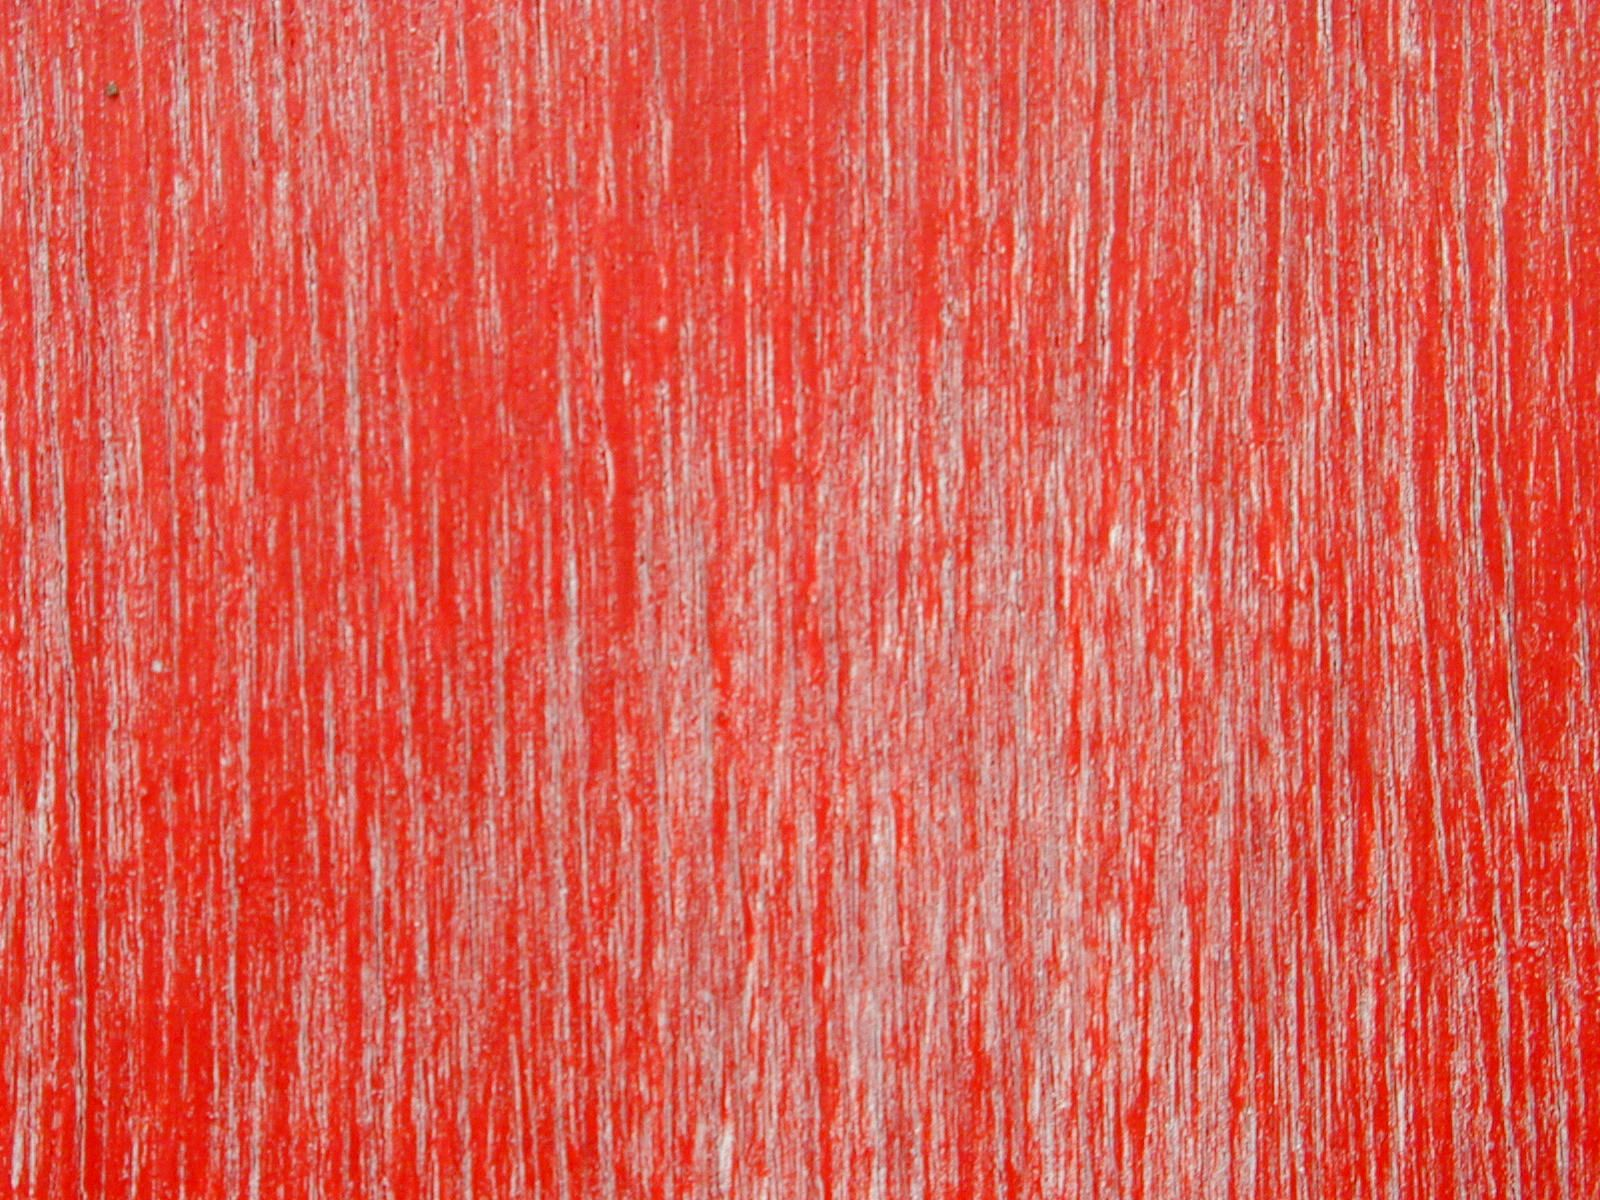 Painted red wood texture images galleries with a bite - Red exterior wood paint plan ...